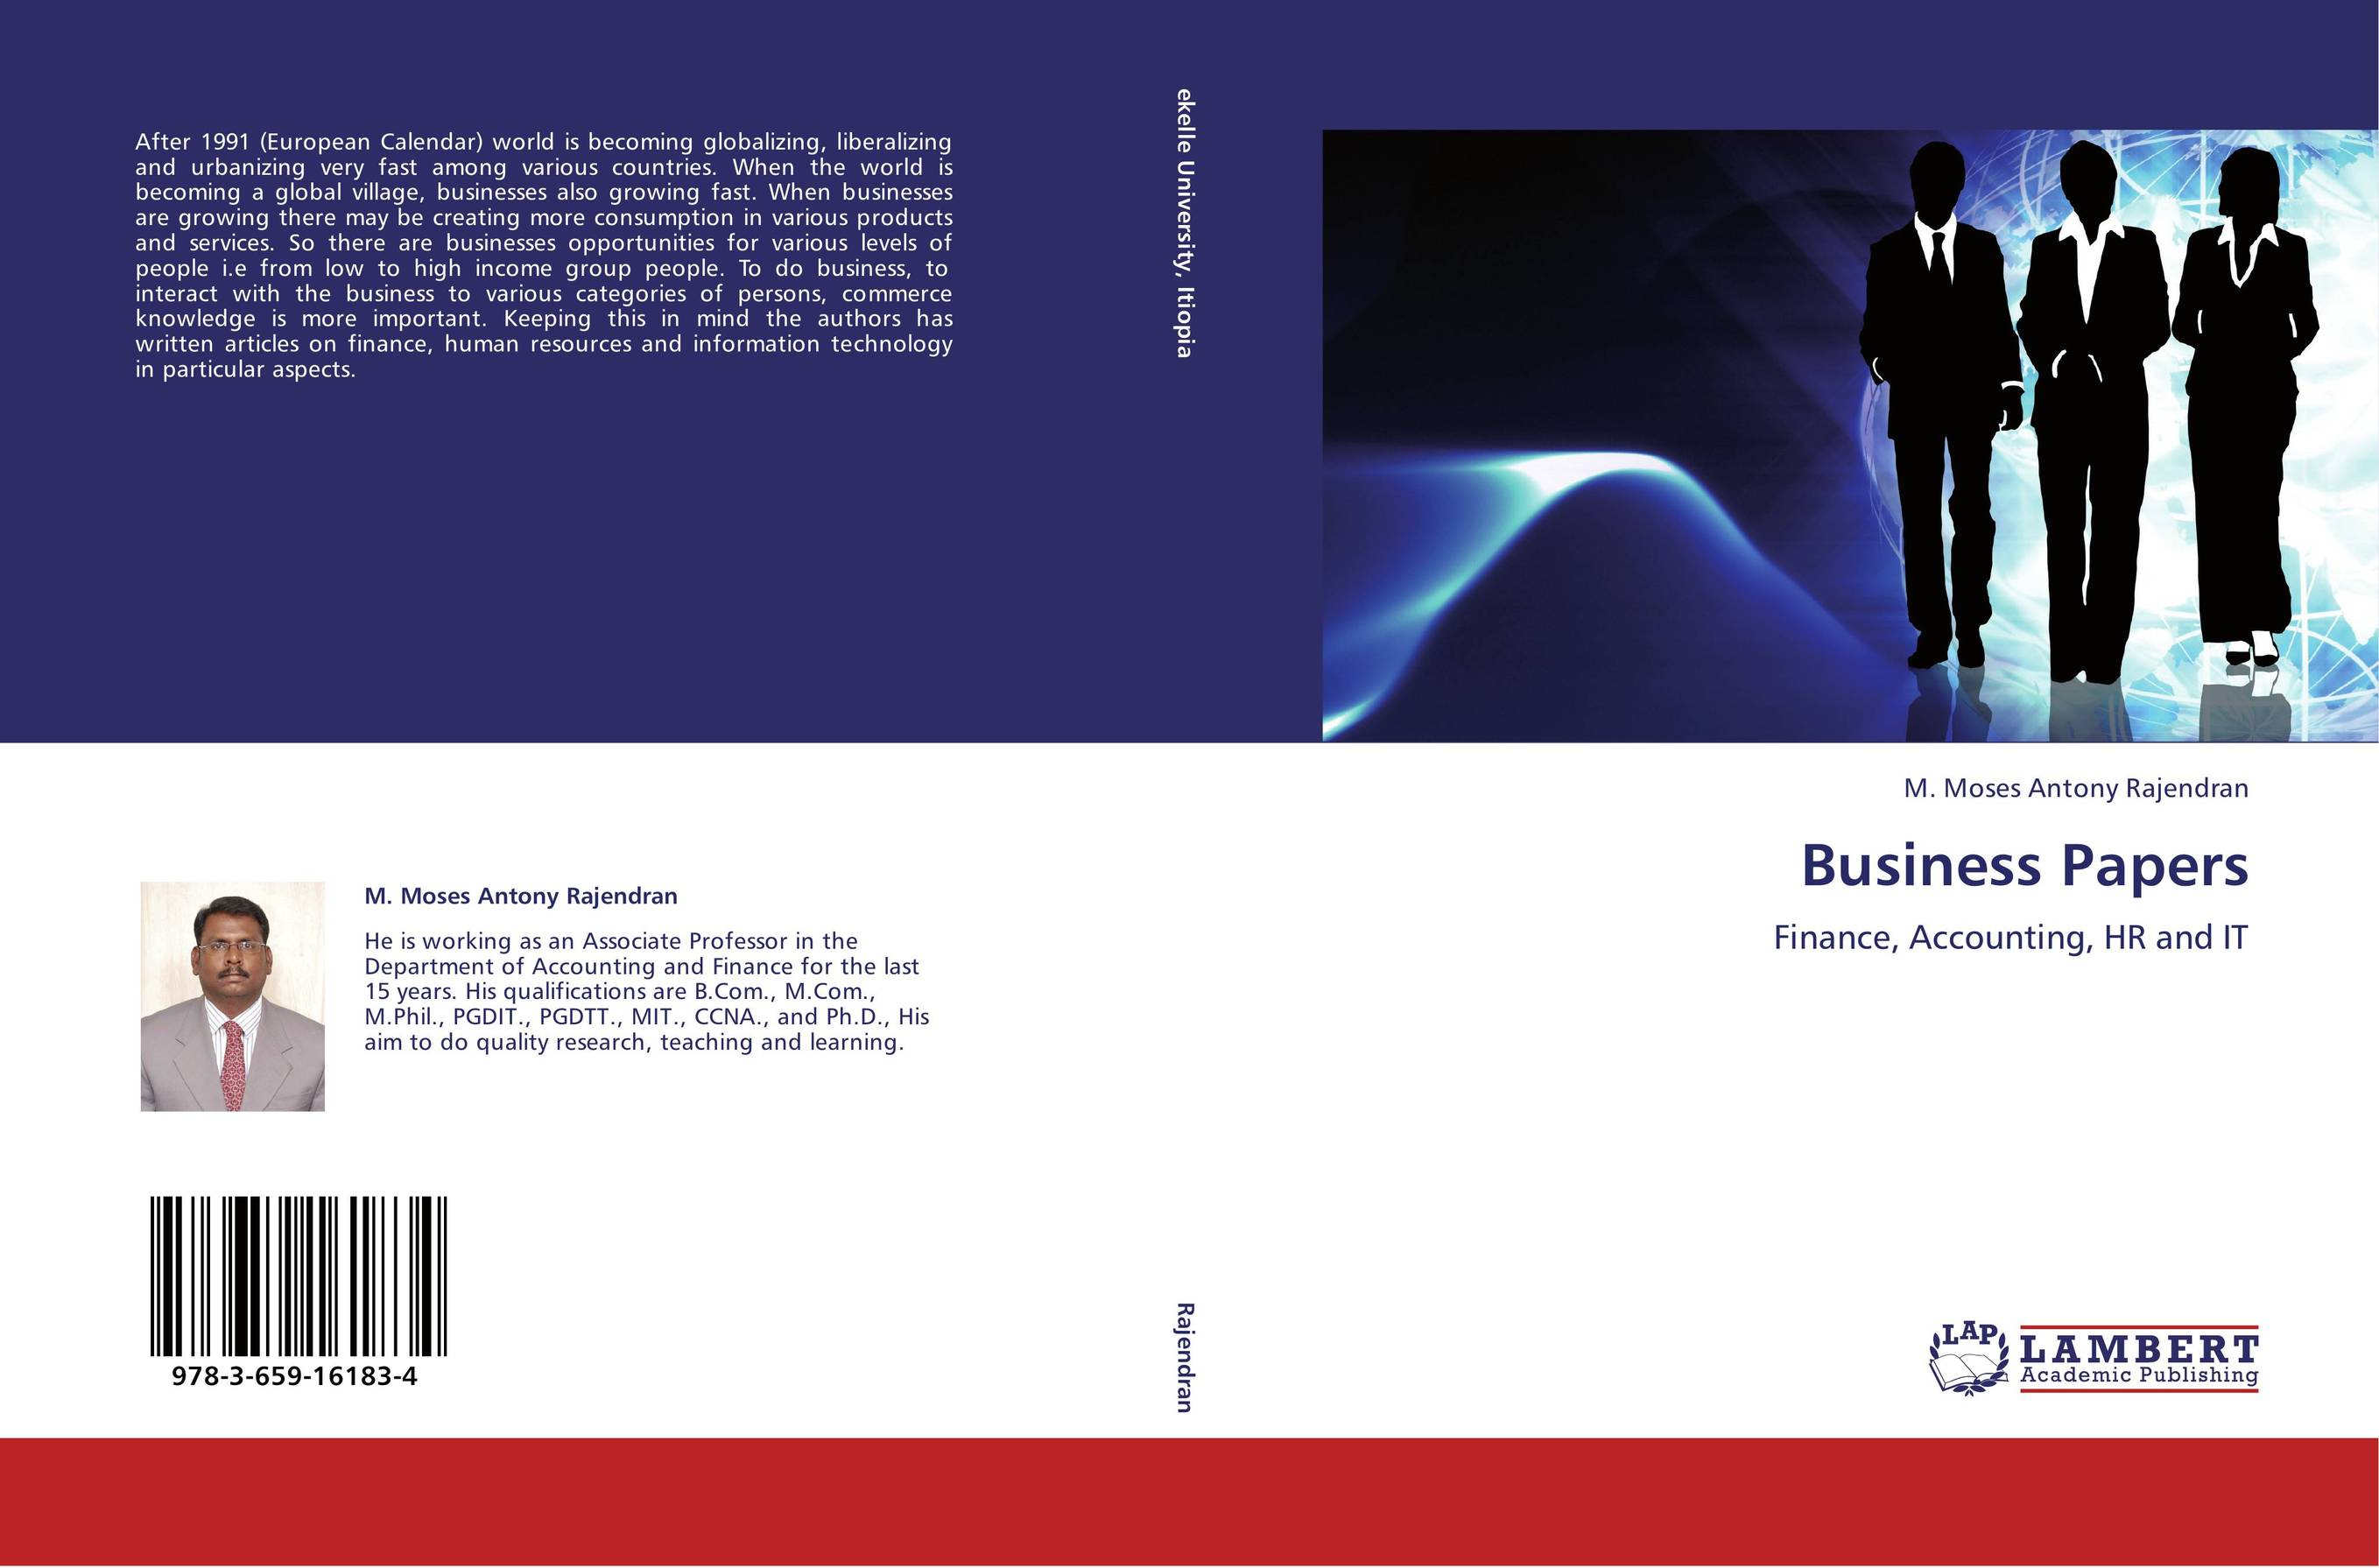 published research papers on finance Published research papers in finance published papers the review of financial studies, previously published papers are available on the oxford university press web site back issues from 1988 are also.